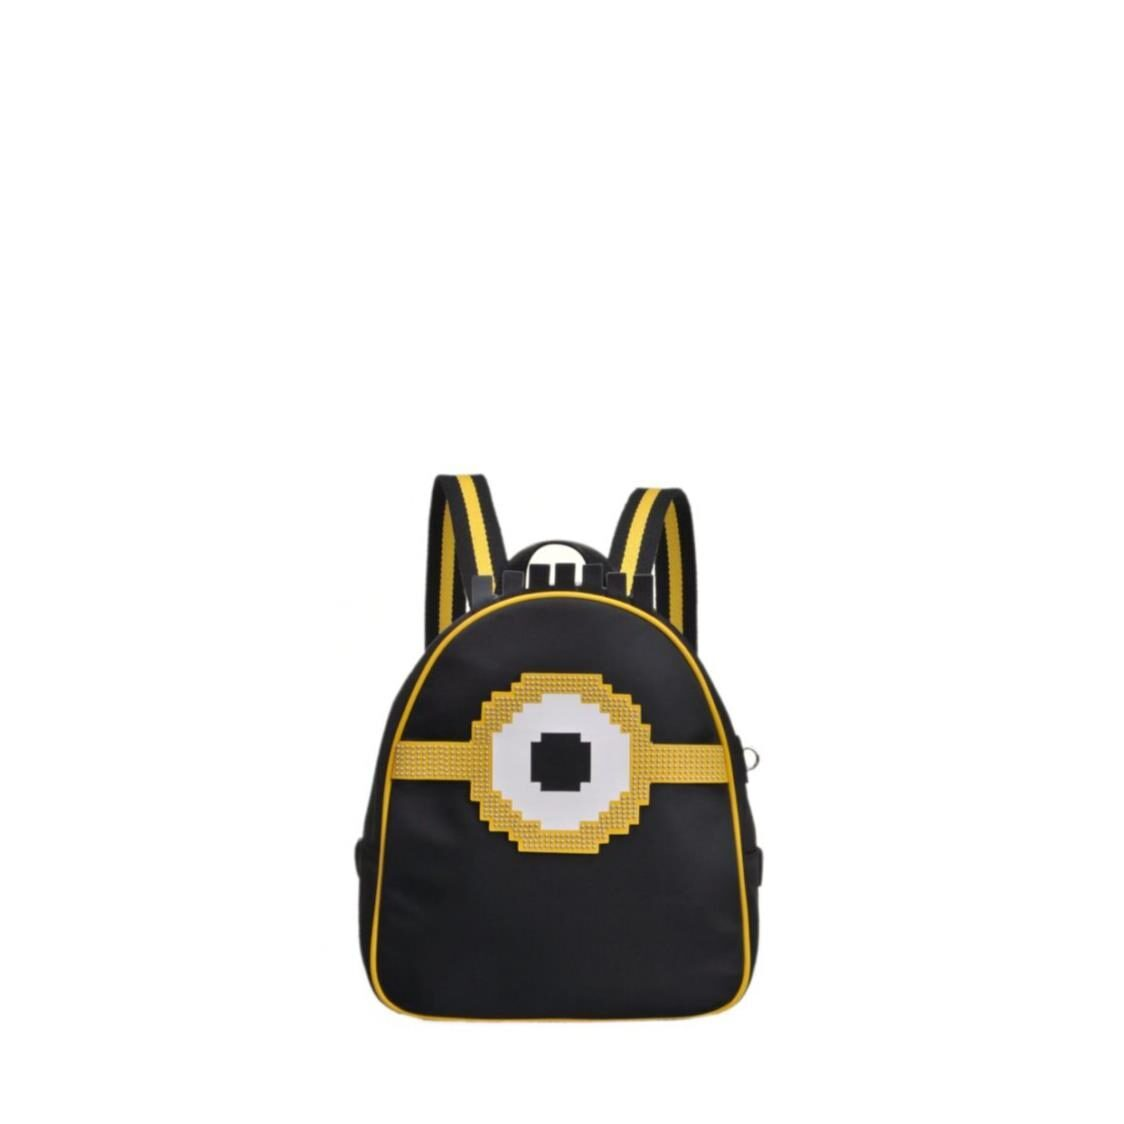 Fion Minions Jacquard with Leather Backpack - FAAFIMX005BLKYLWZZ